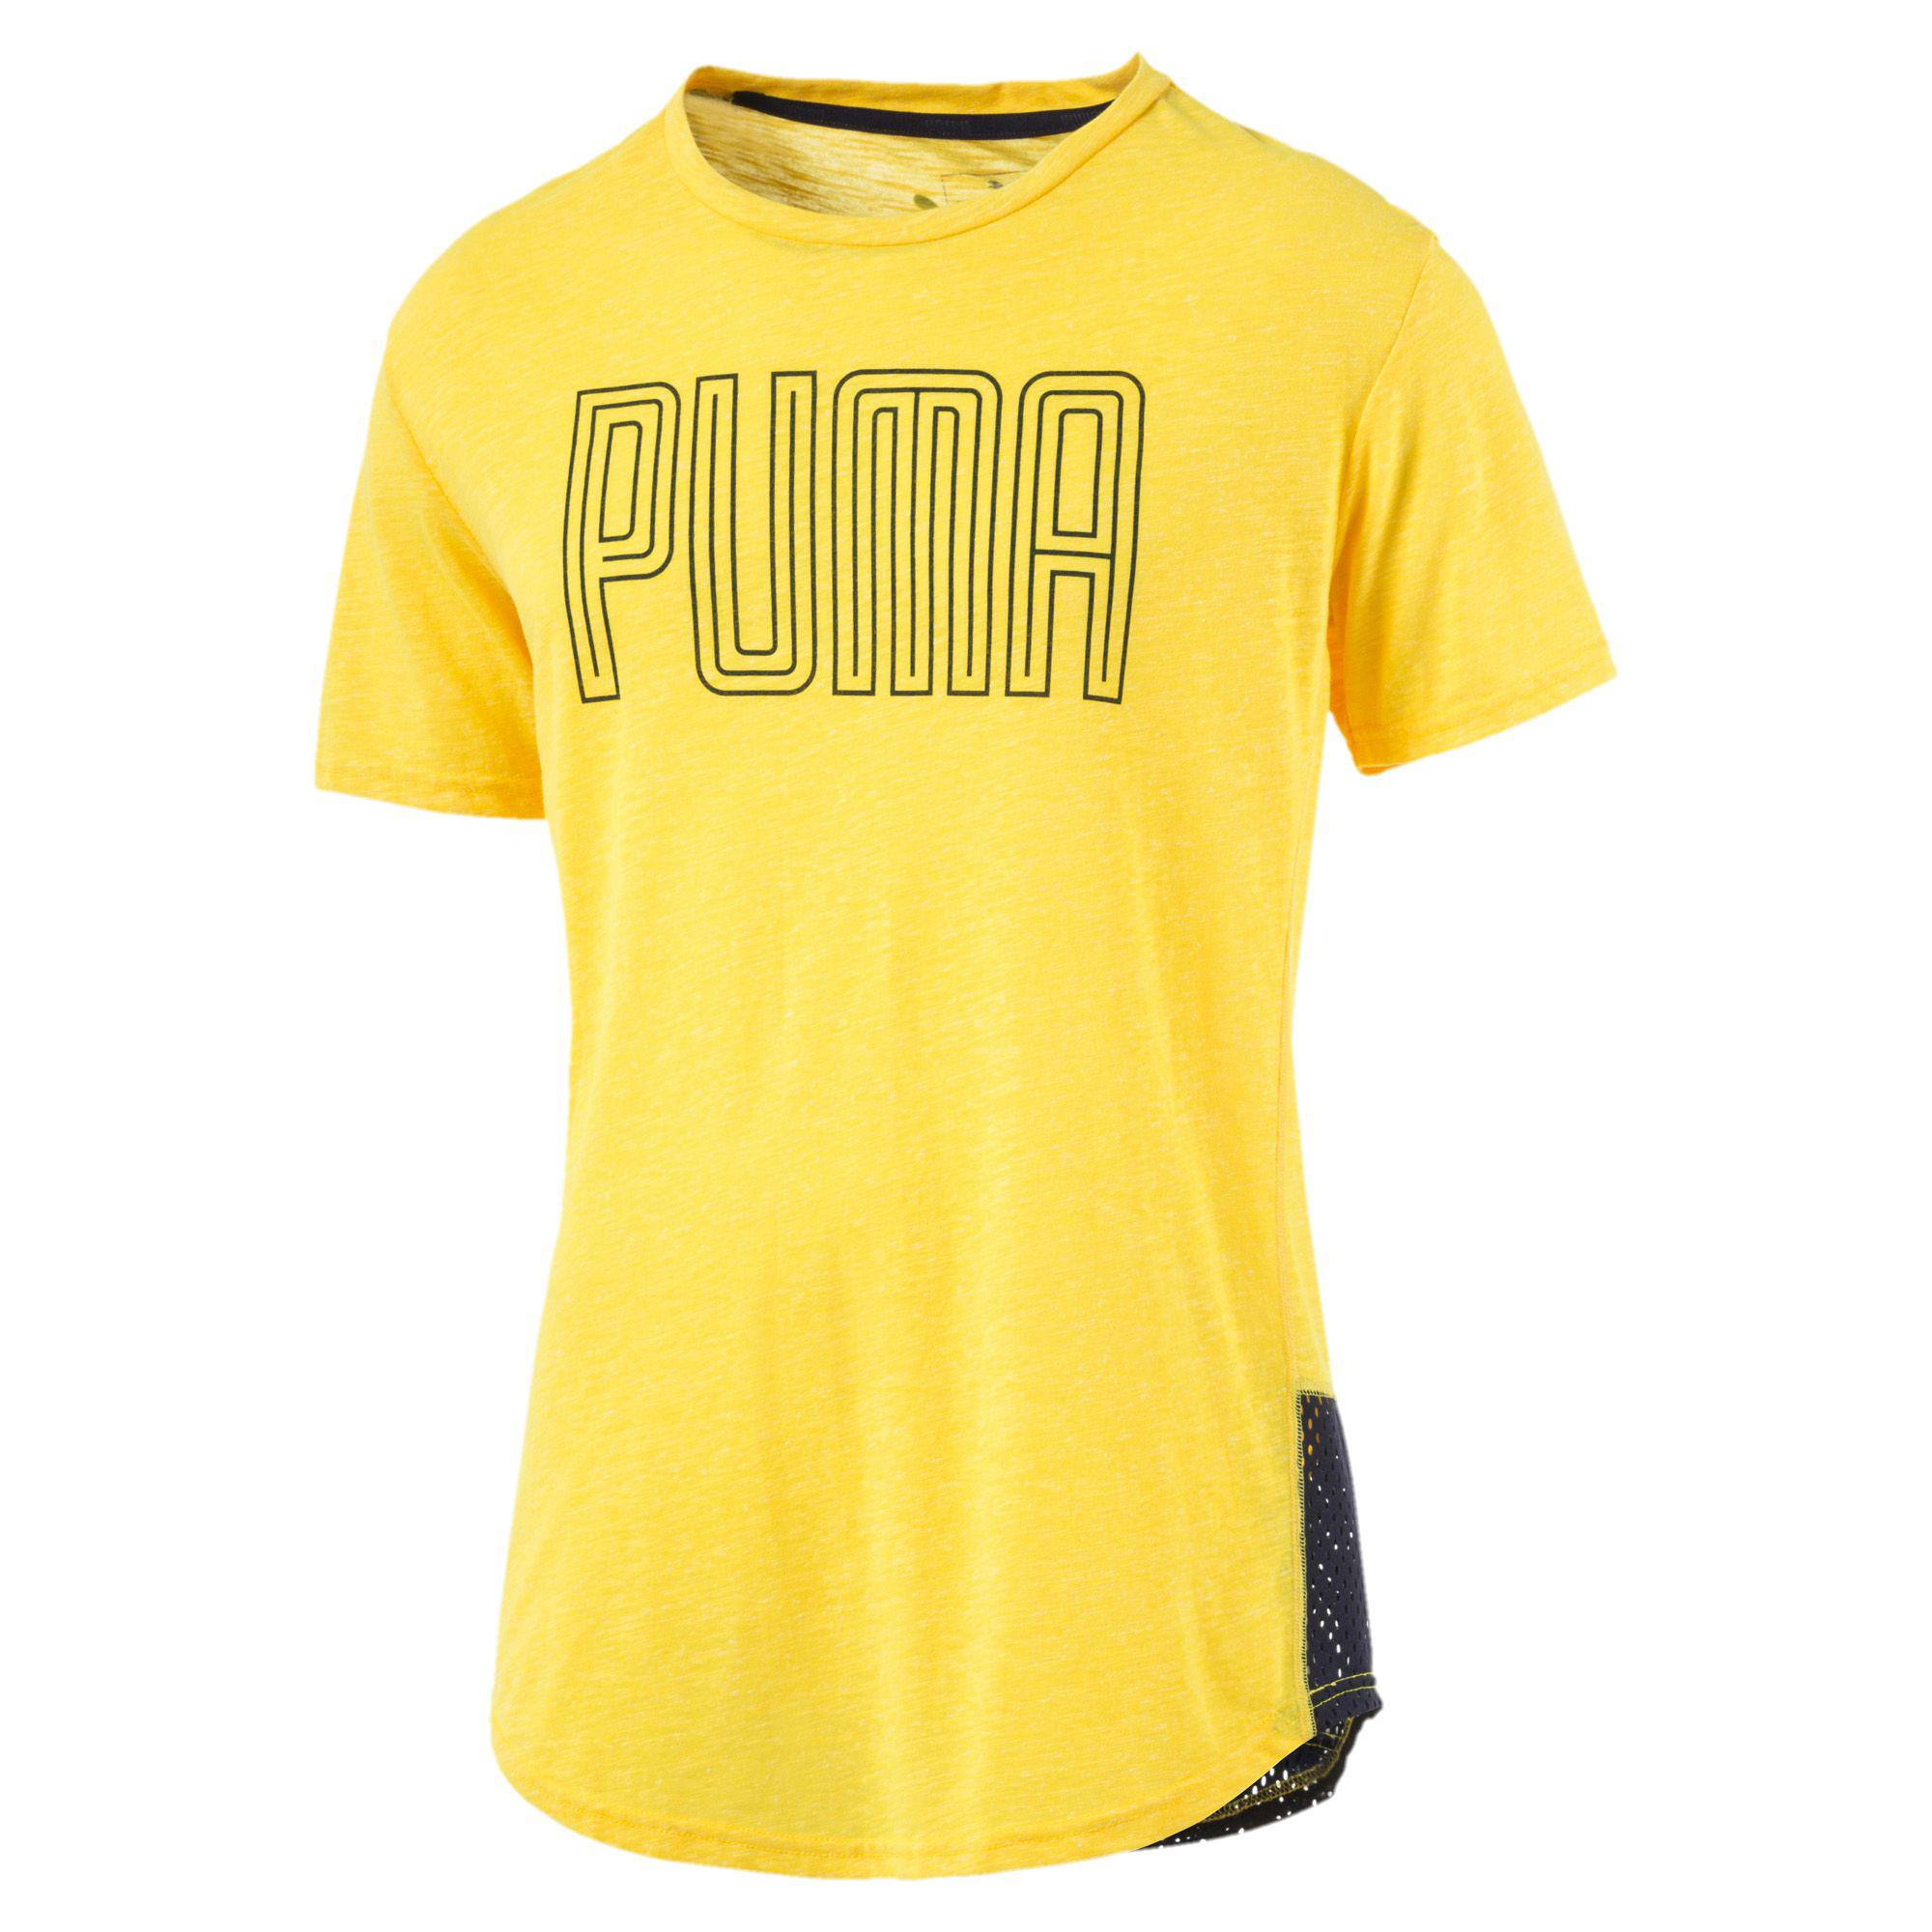 31b3b6733 PUMA Drirelease® Novelty Graphic T-shirt in Yellow for Men - Lyst